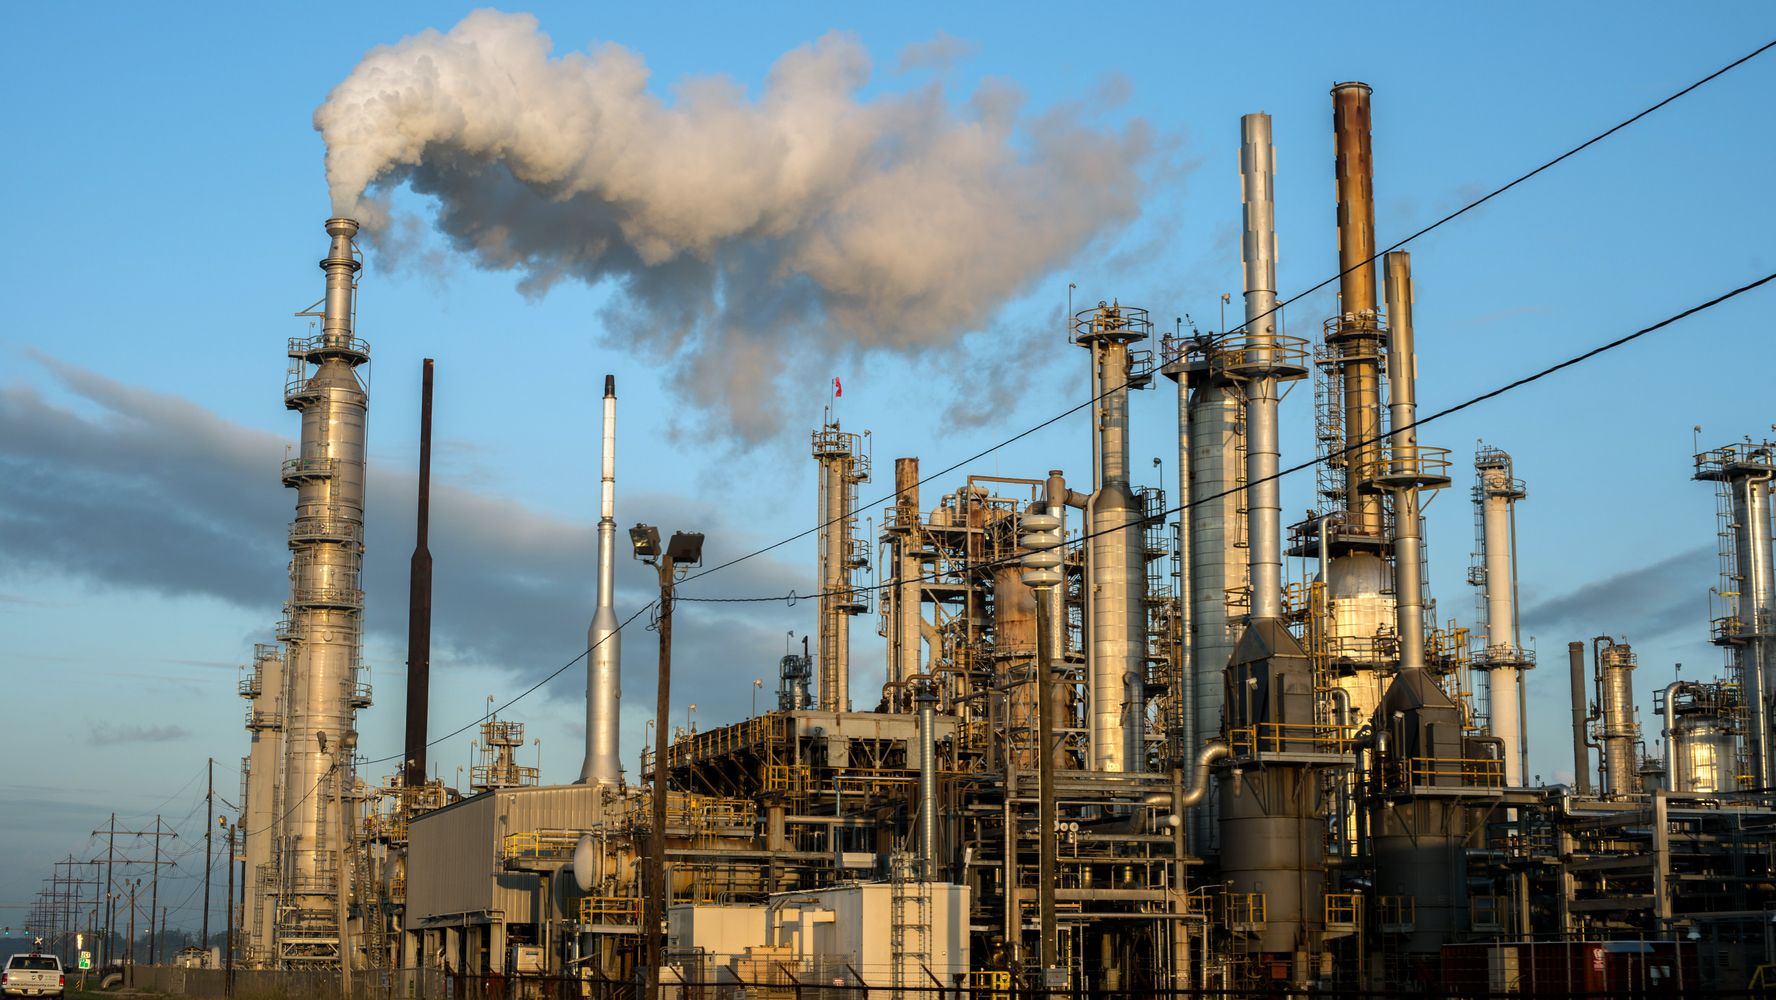 UN Human Rights Experts Say Environmental Racism In Louisiana's Cancer Alley Must End